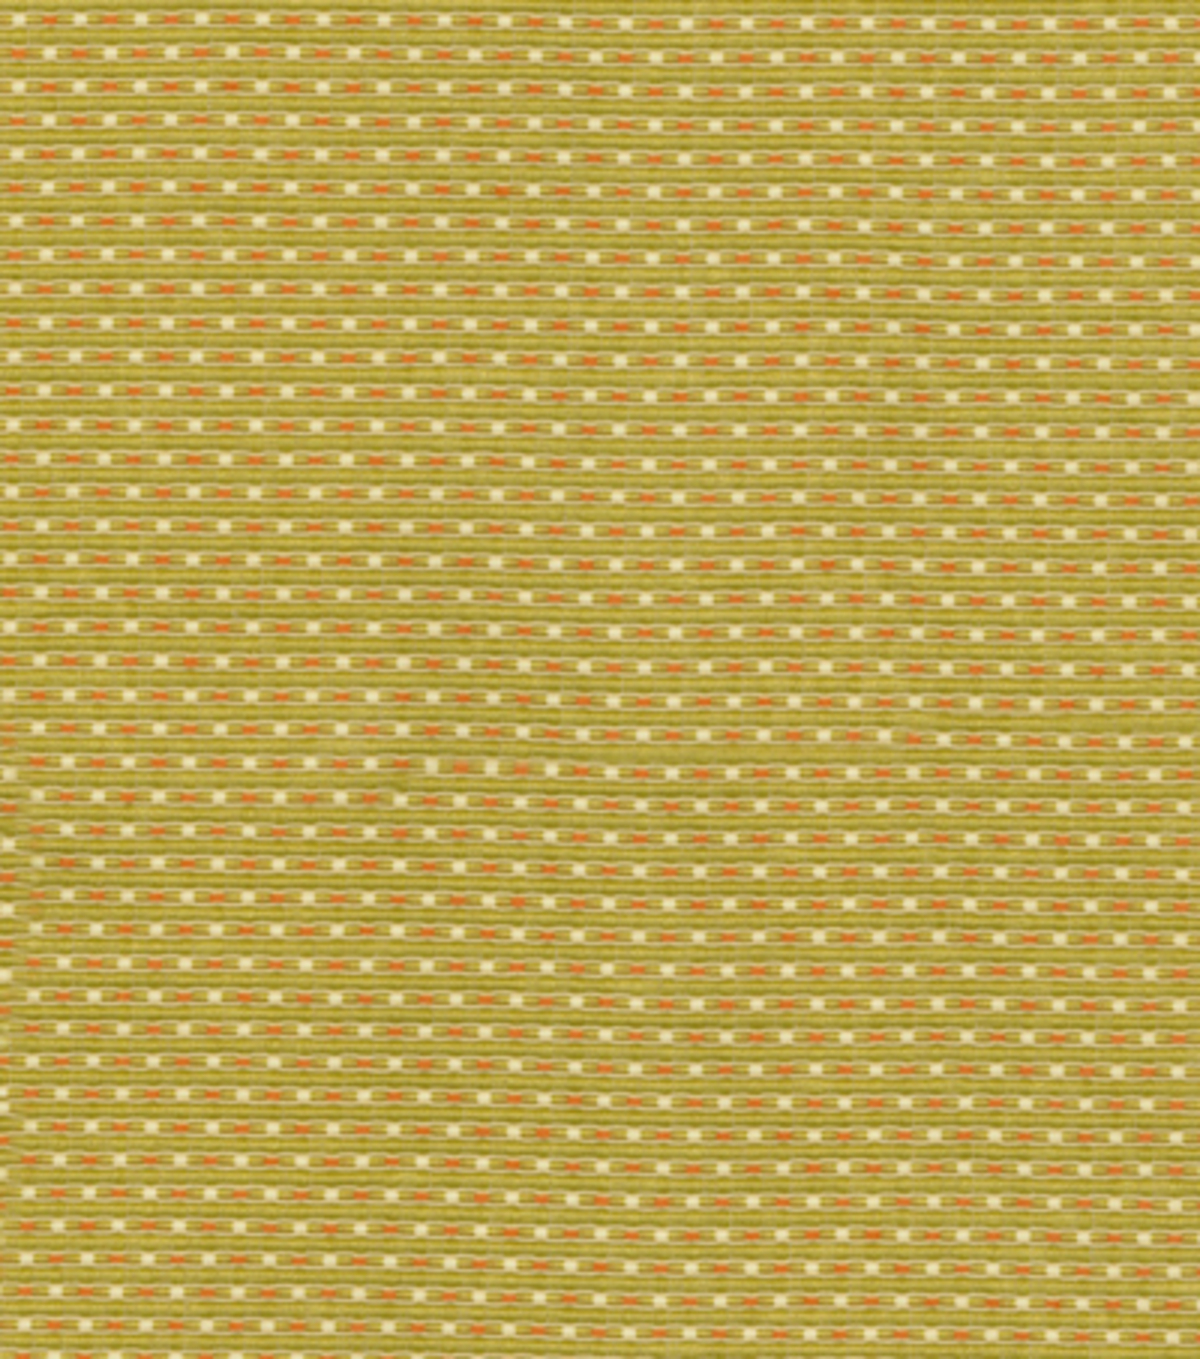 Home Decor 8\u0022x8\u0022 Fabric Swatch-Upholstery Fabric-Waverly Dashing/Spring